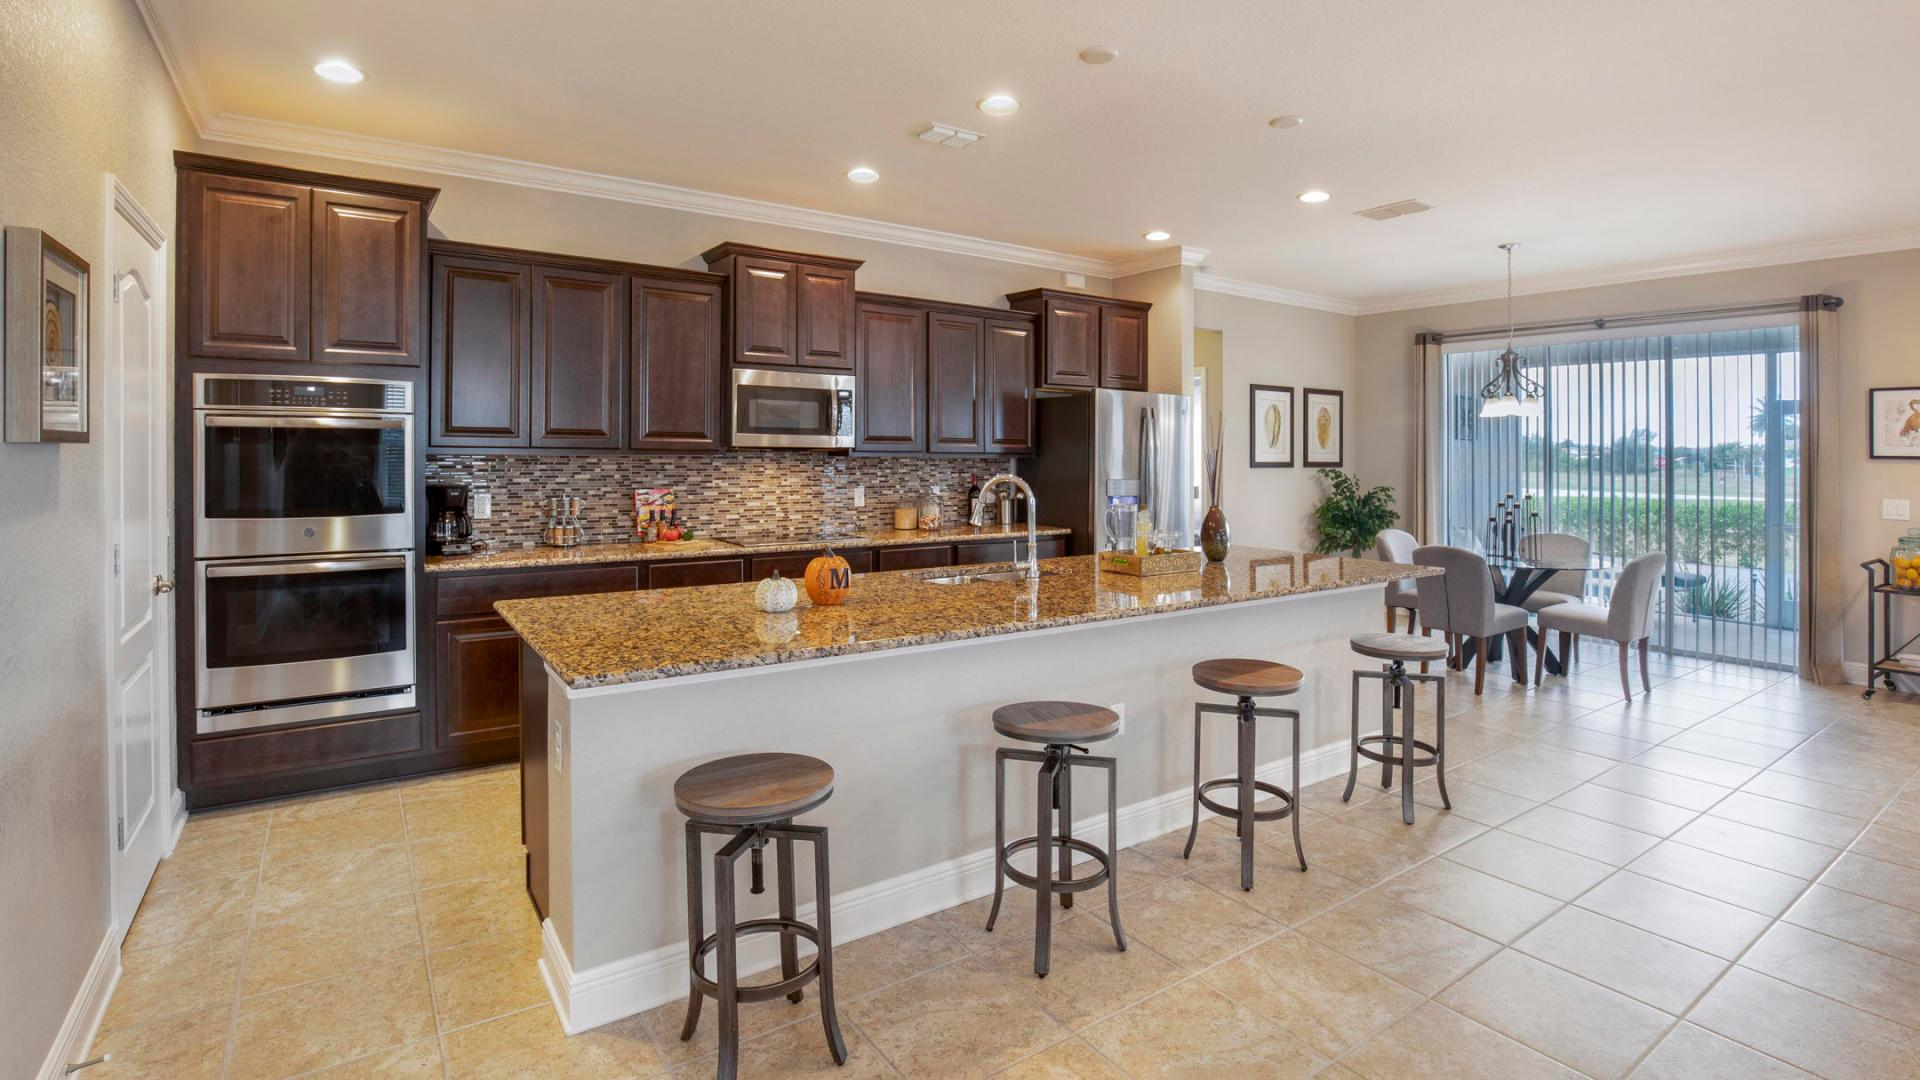 Kitchen featured in the Venice By Maronda Homes in Daytona Beach, FL